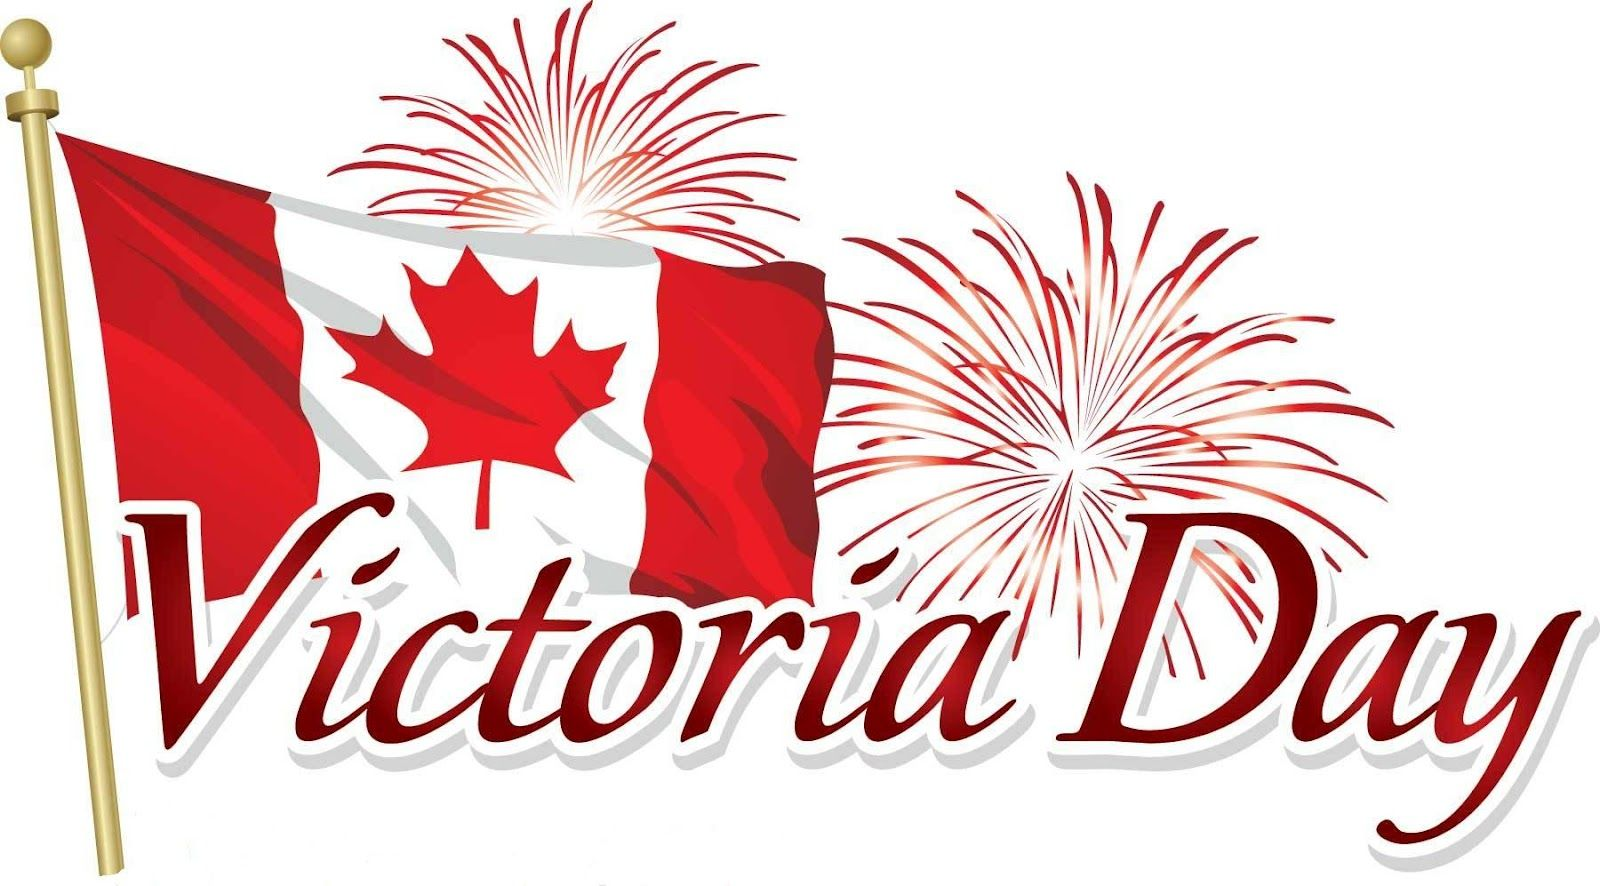 2018 clipart victoria day. What is put in